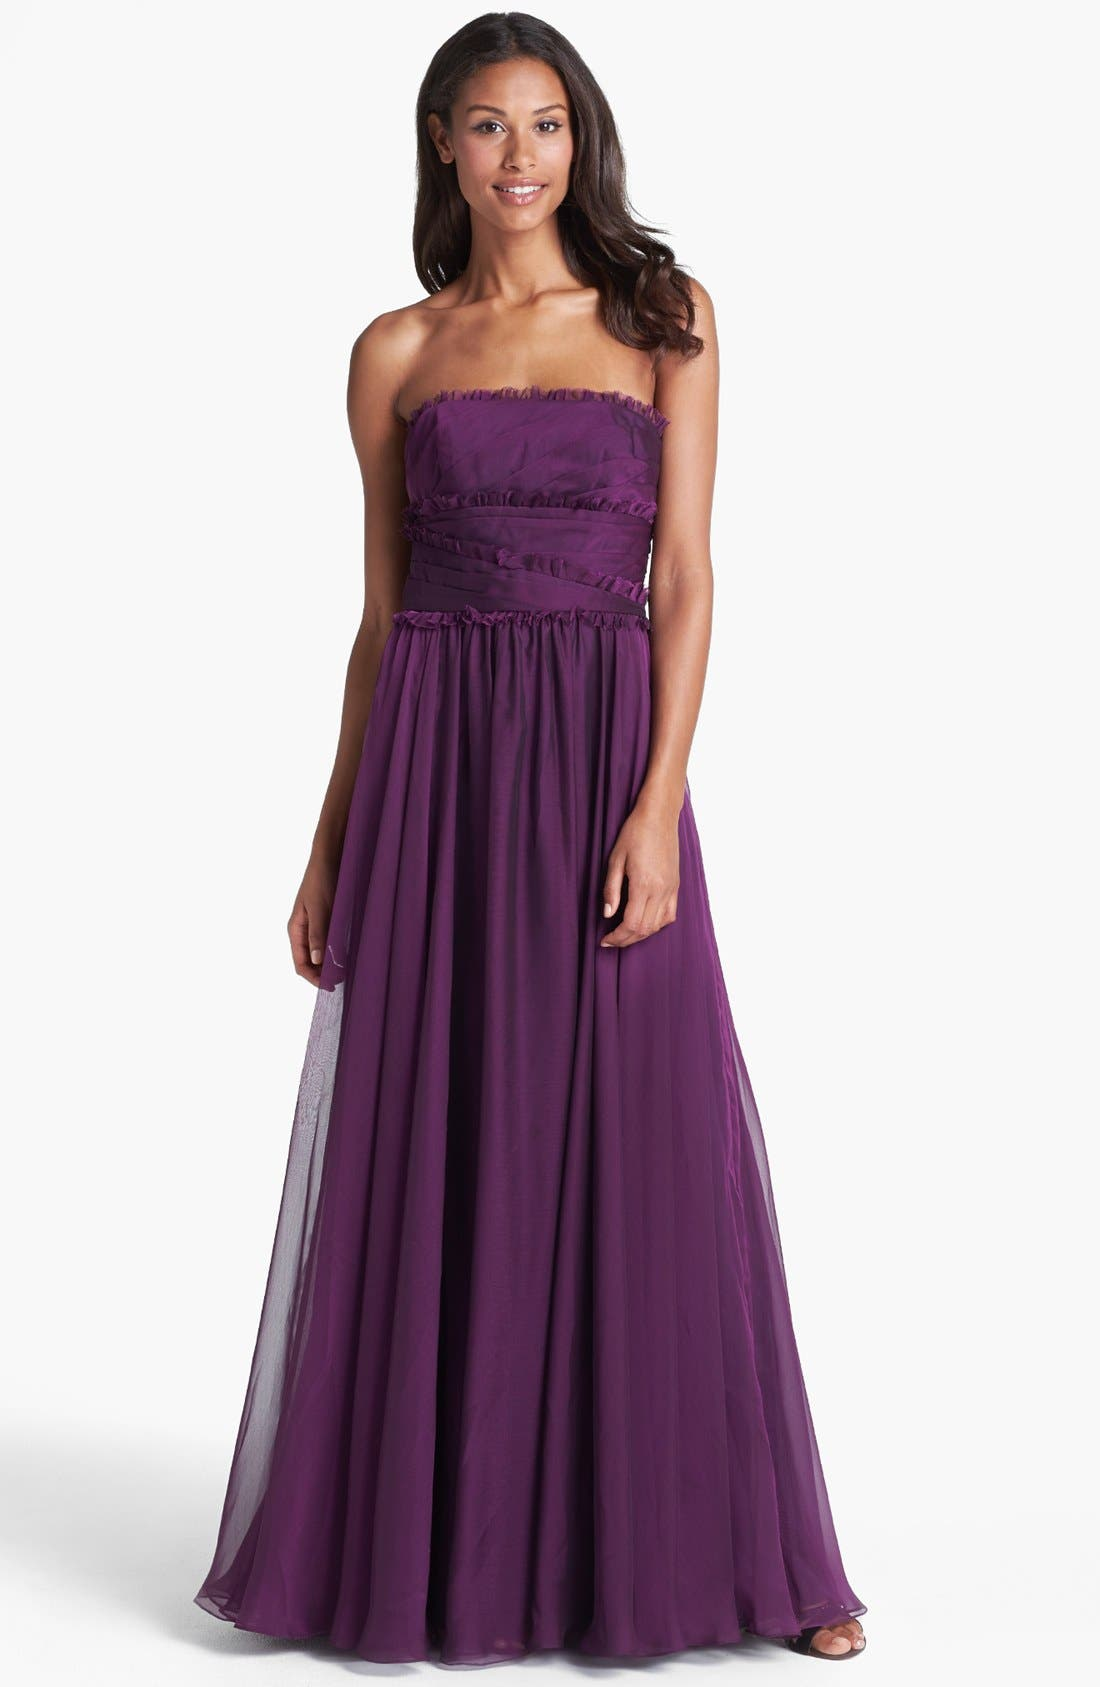 ML Monique Lhuillier Bridesmaids Strapless Chiffon Gown,                             Main thumbnail 11, color,